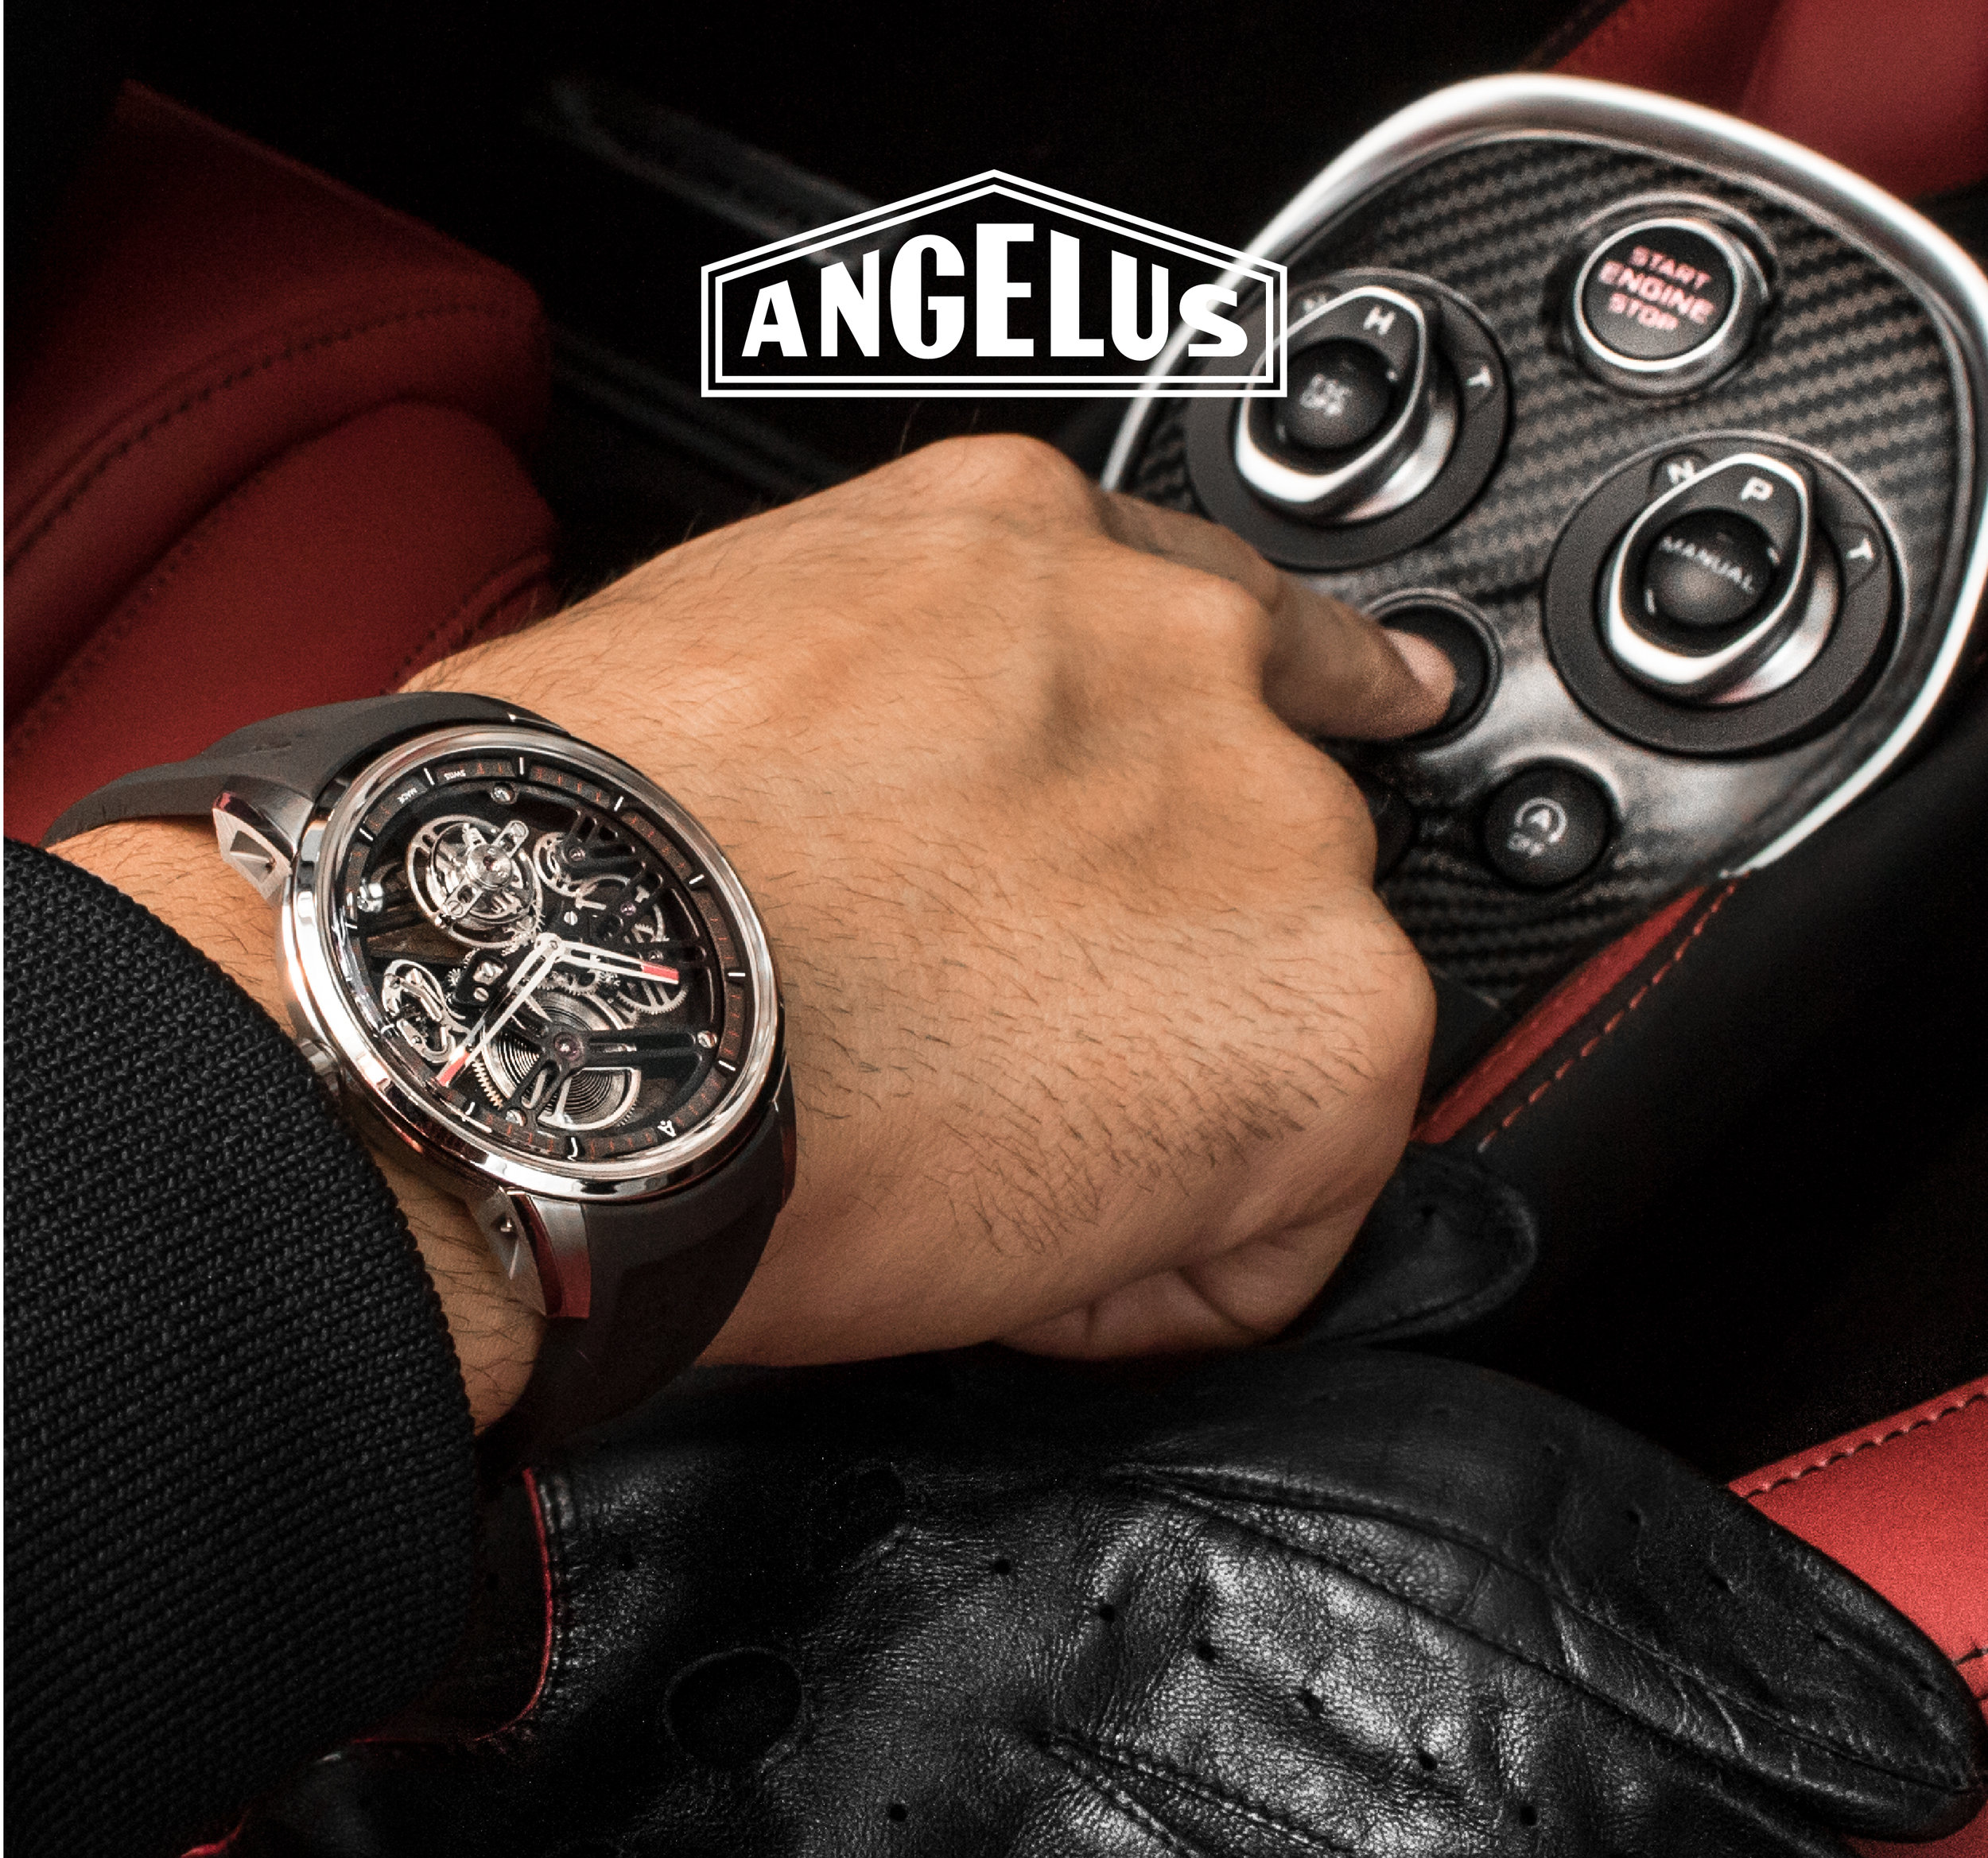 The very best of classic haute horlogerie blended with ultra-modern watchmaking production methods. -